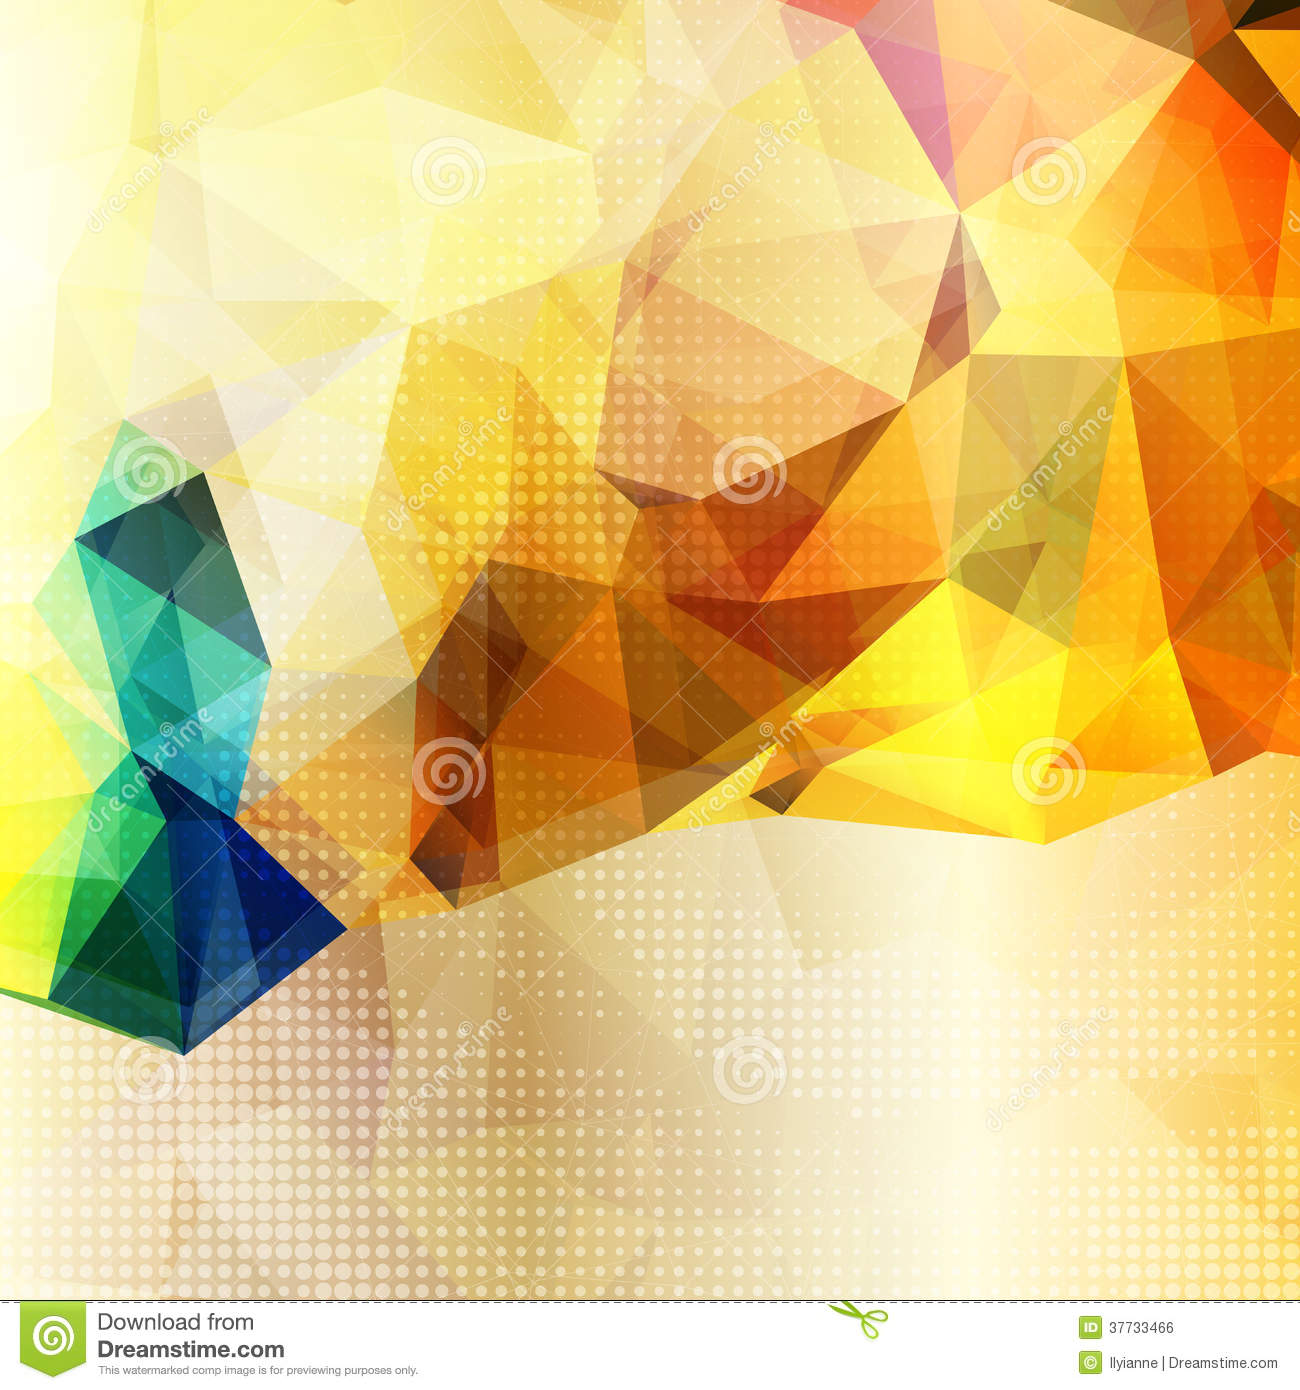 Green Polygonal Business Card: Abstract Background With Shining Yellow Triangles Stock